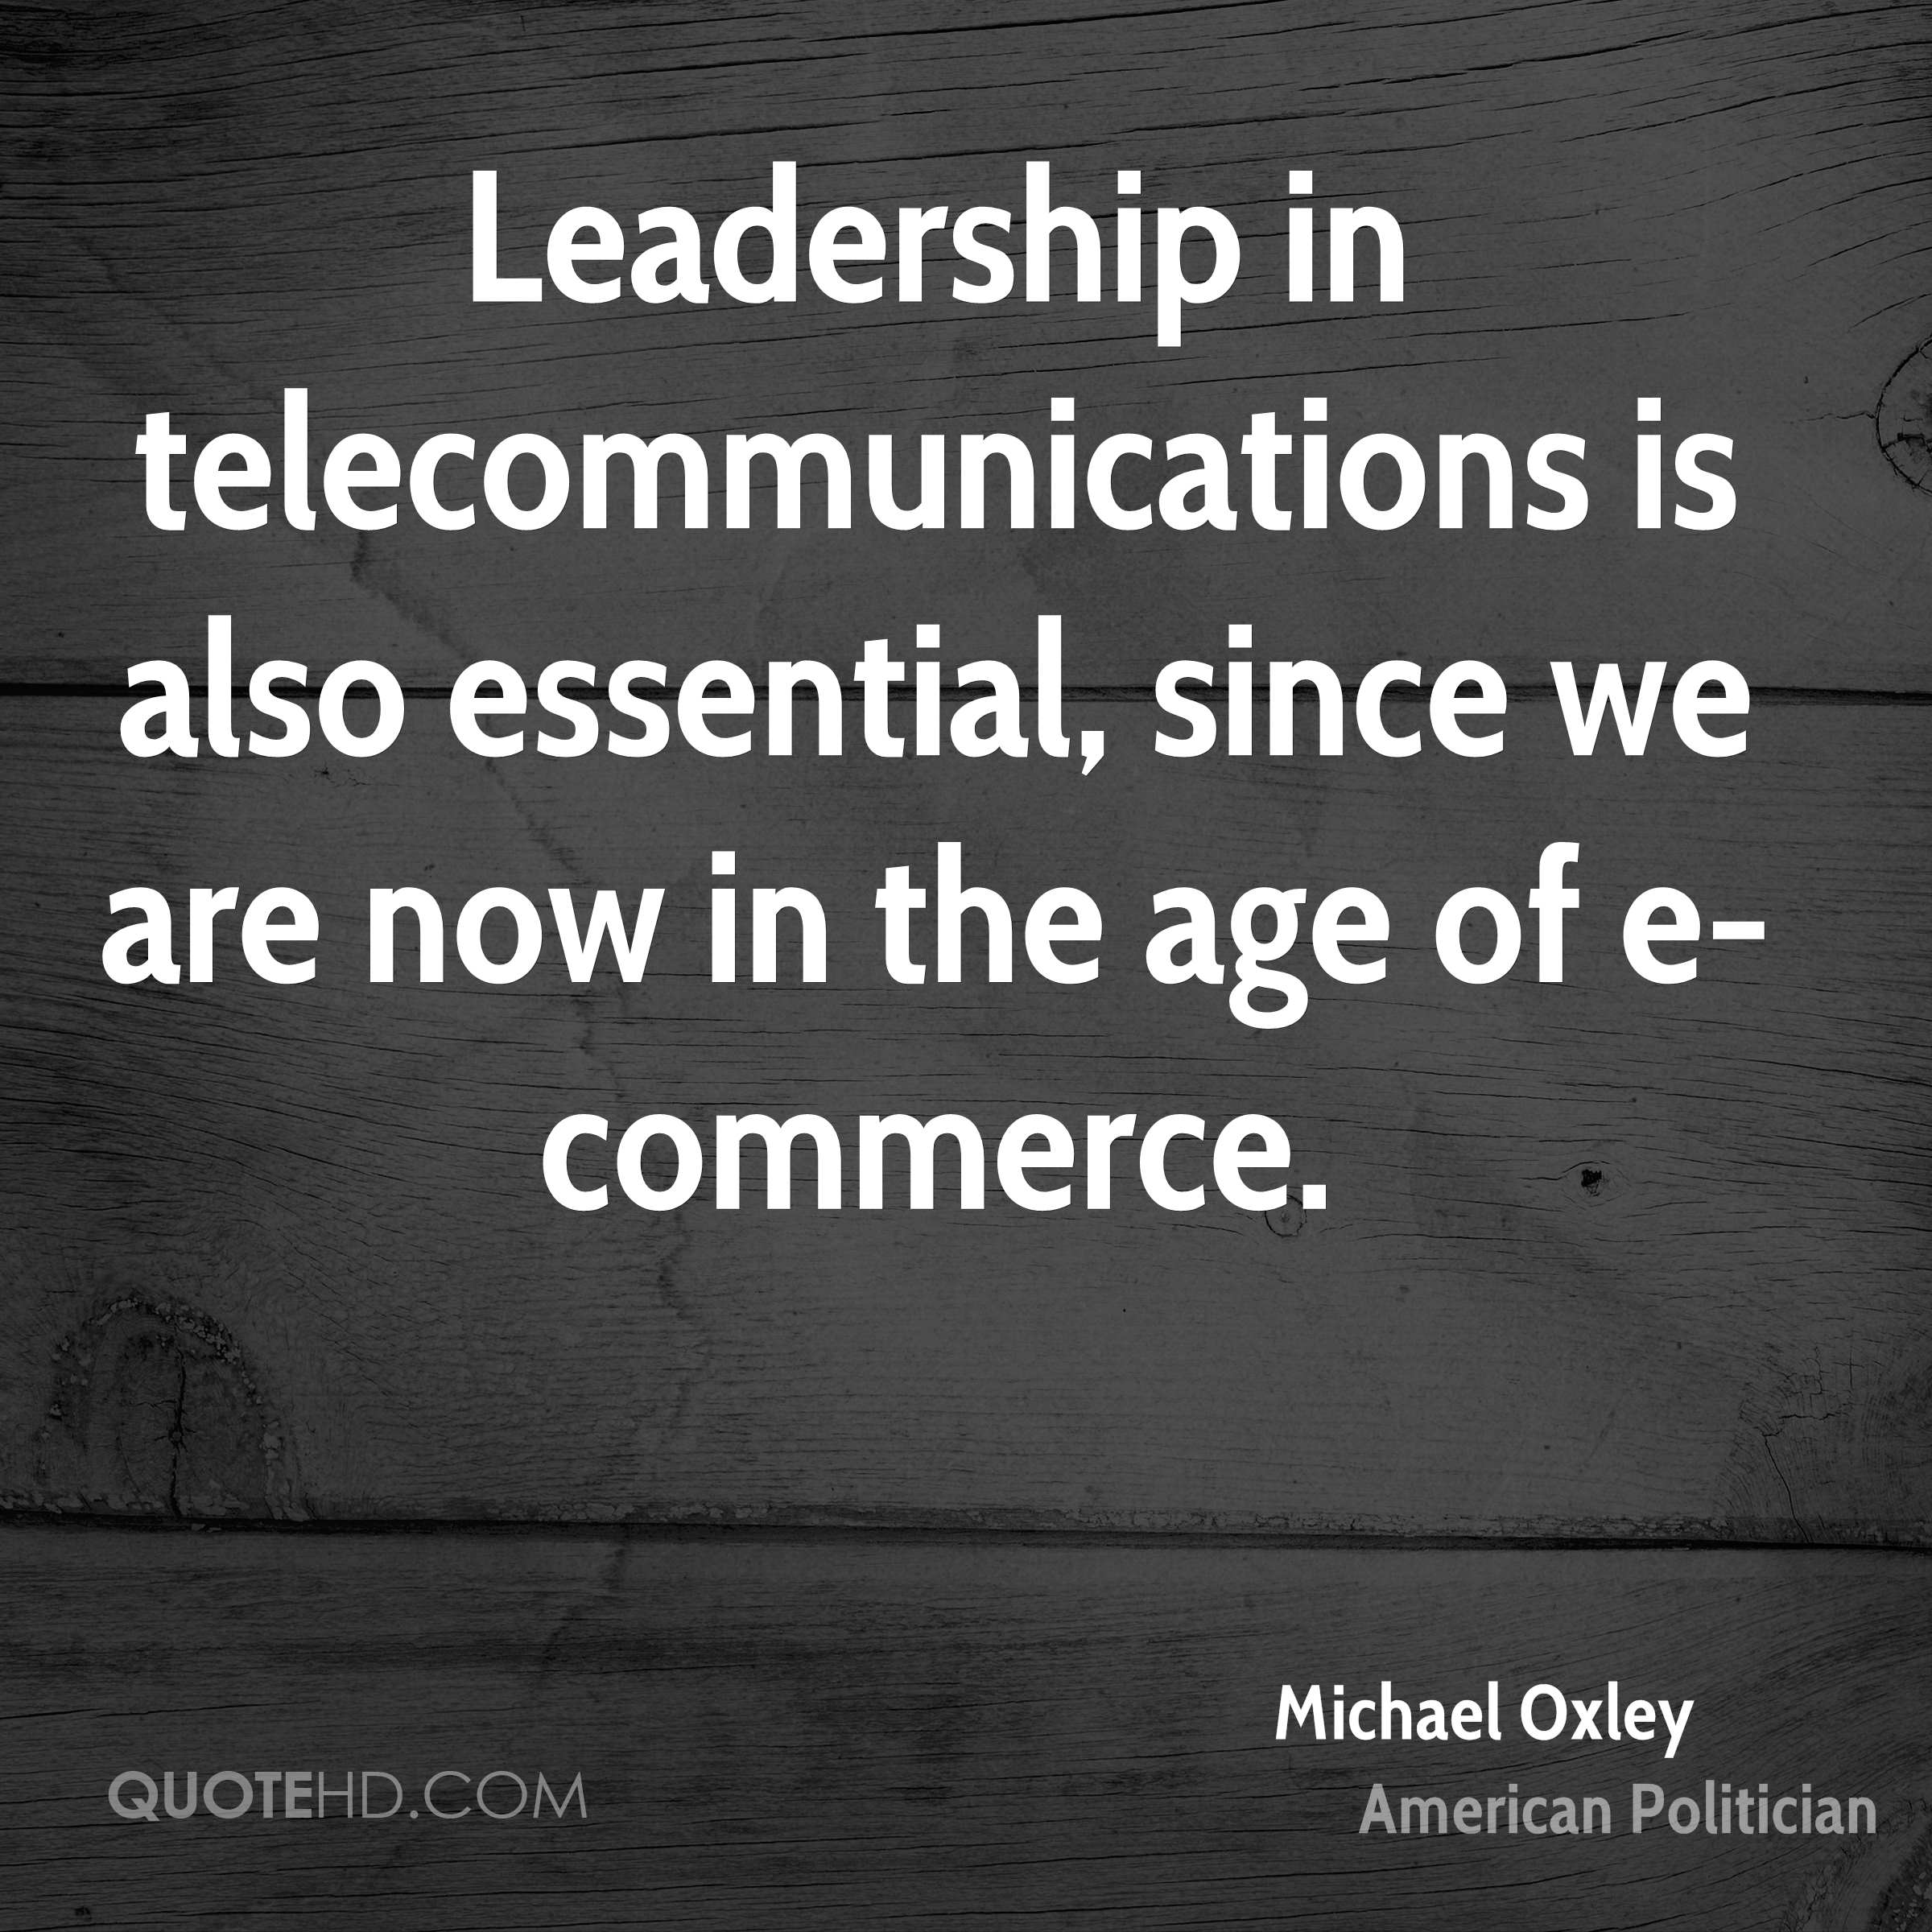 Leadership in telecommunications is also essential, since we are now in the age of e-commerce.